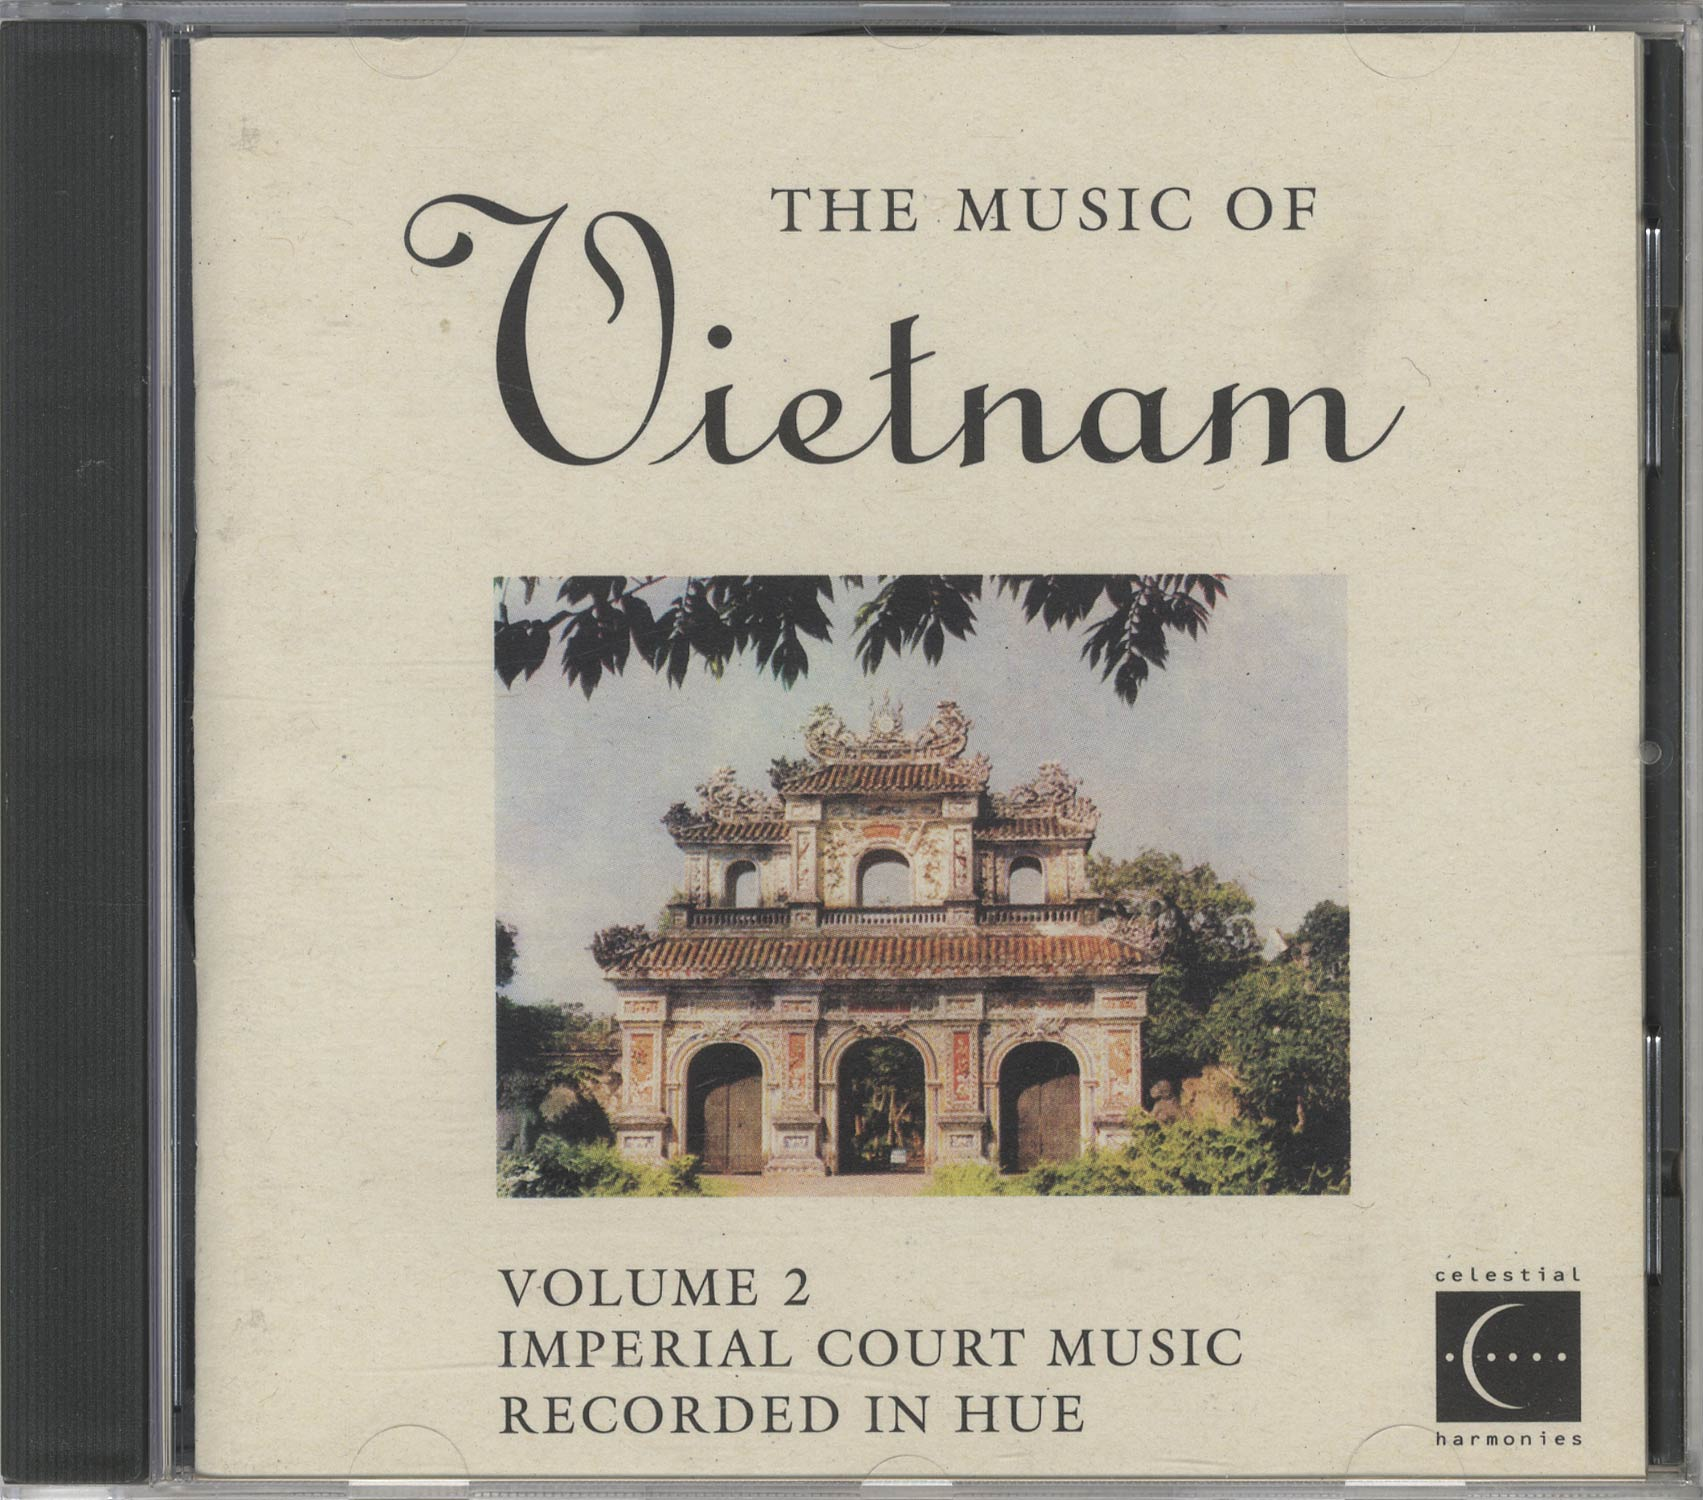 The Music of Vietnam 3 CD Boxed Set[image5]